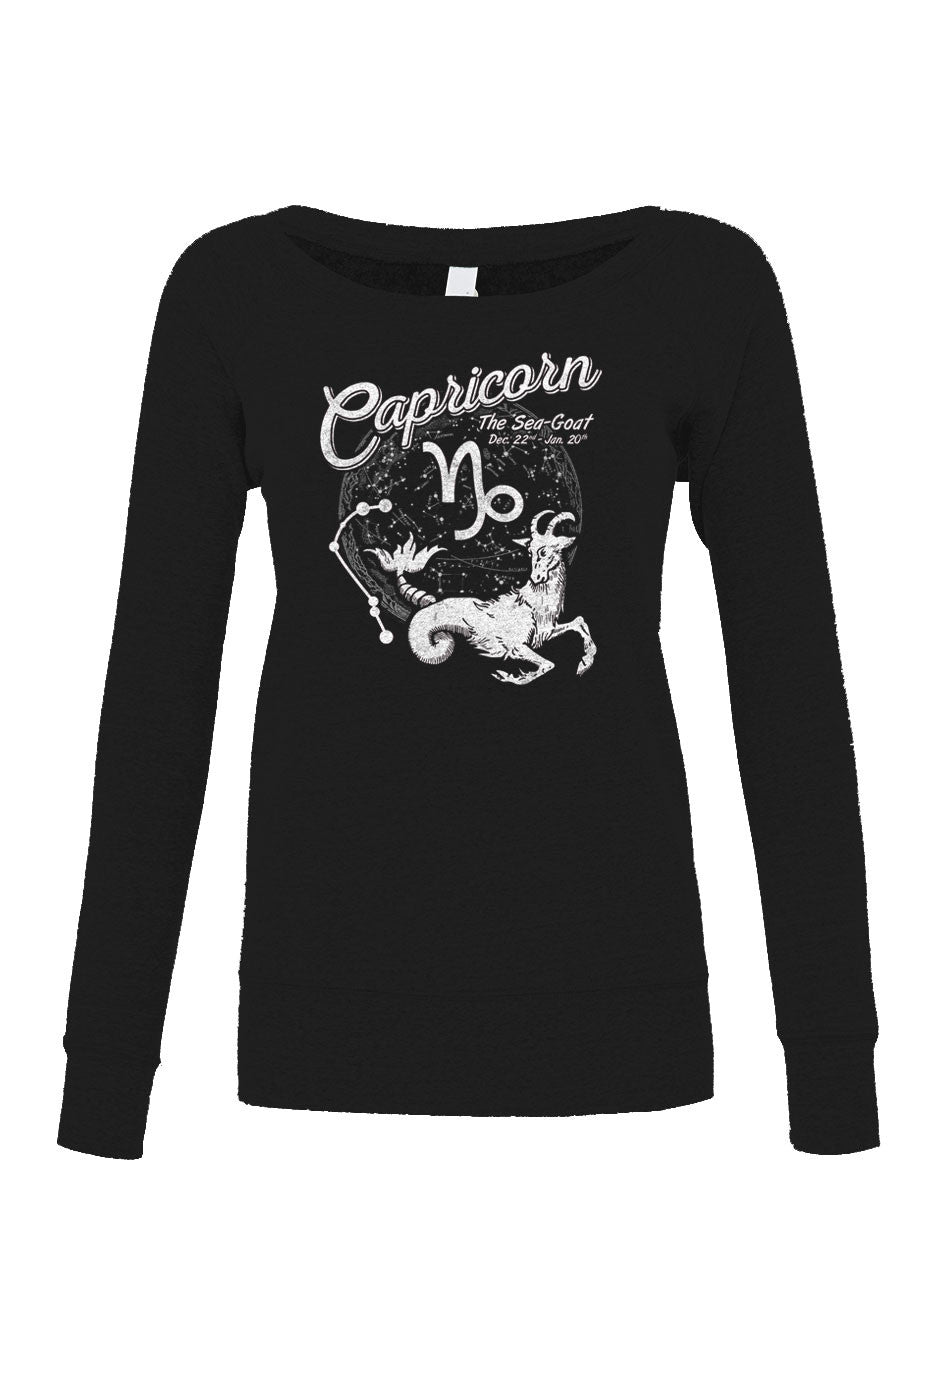 Women's Vintage Capricorn Scoop Neck Fleece - Juniors Fit